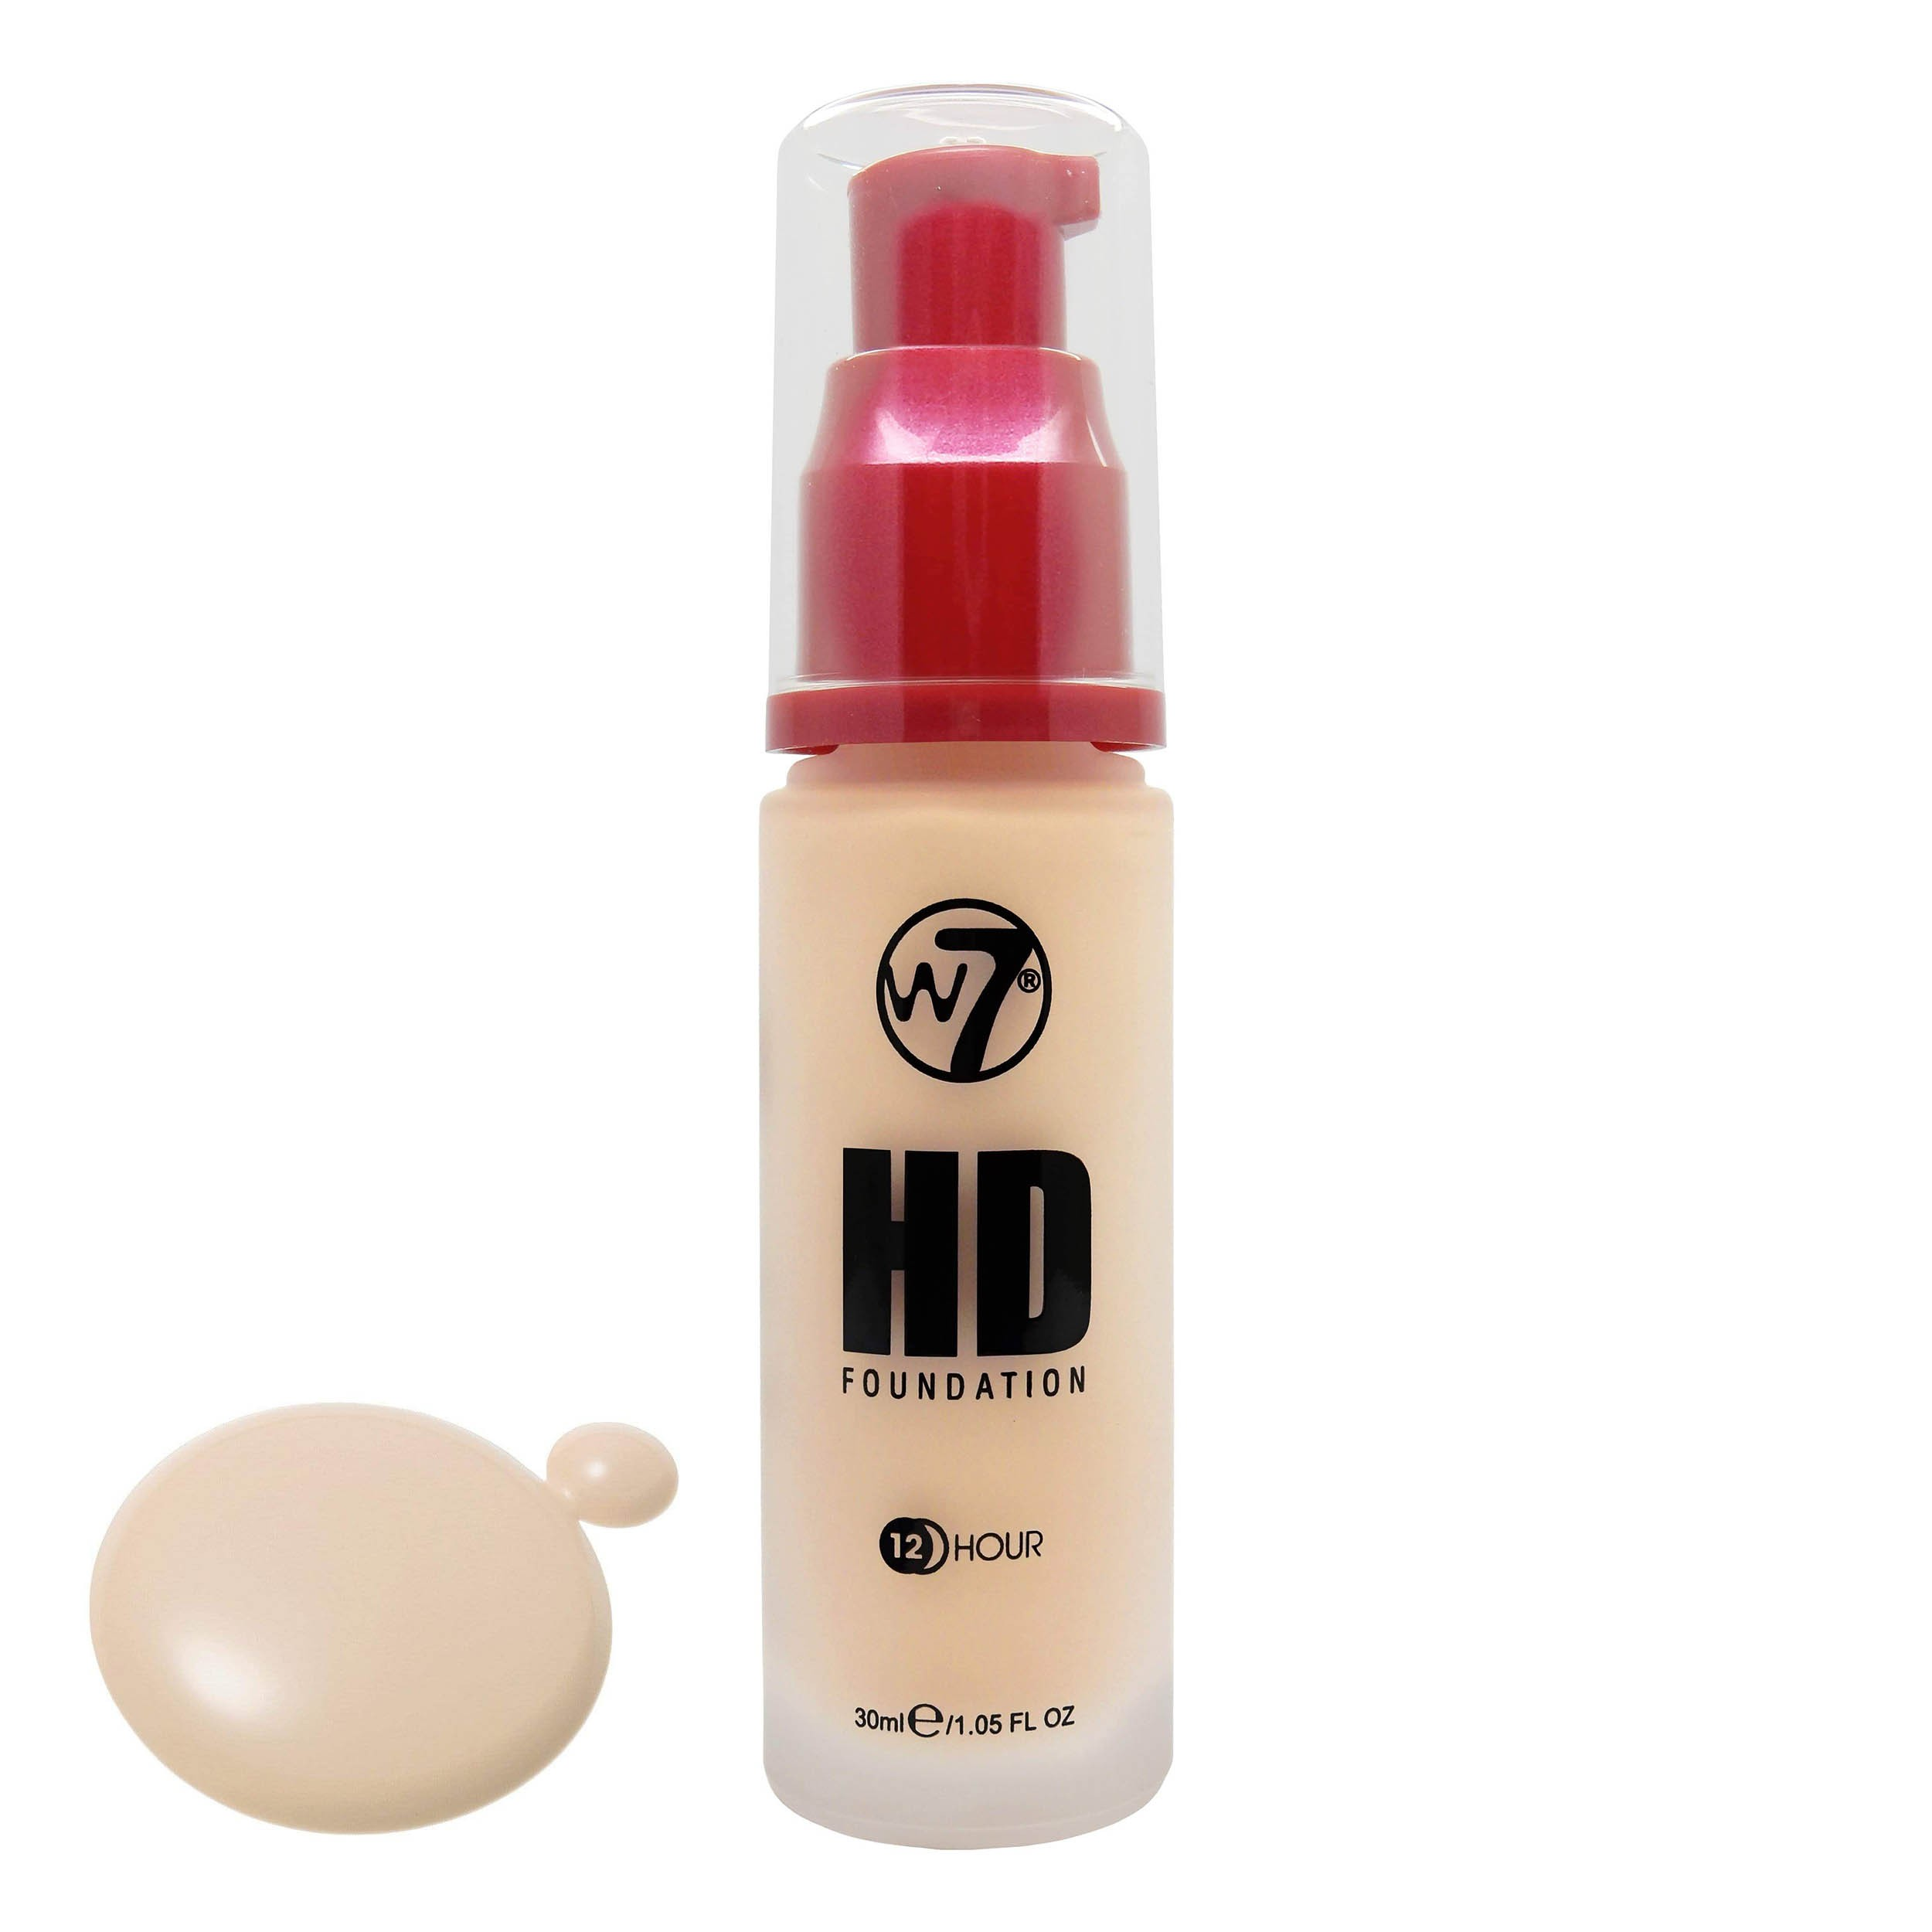 HD Foundation